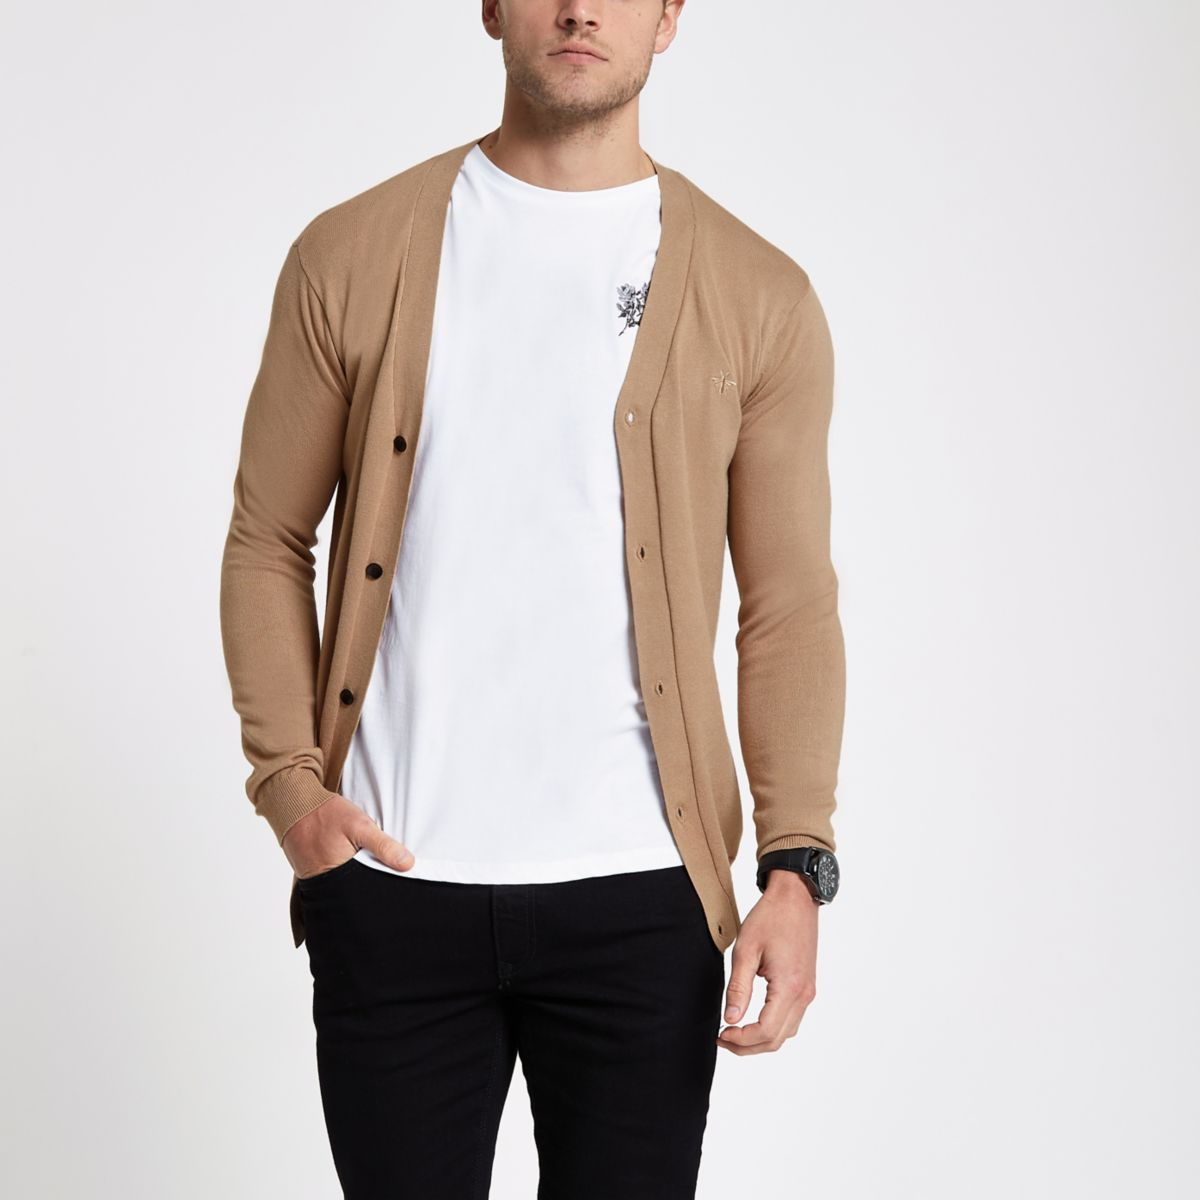 Brown V neck button-up cardigan